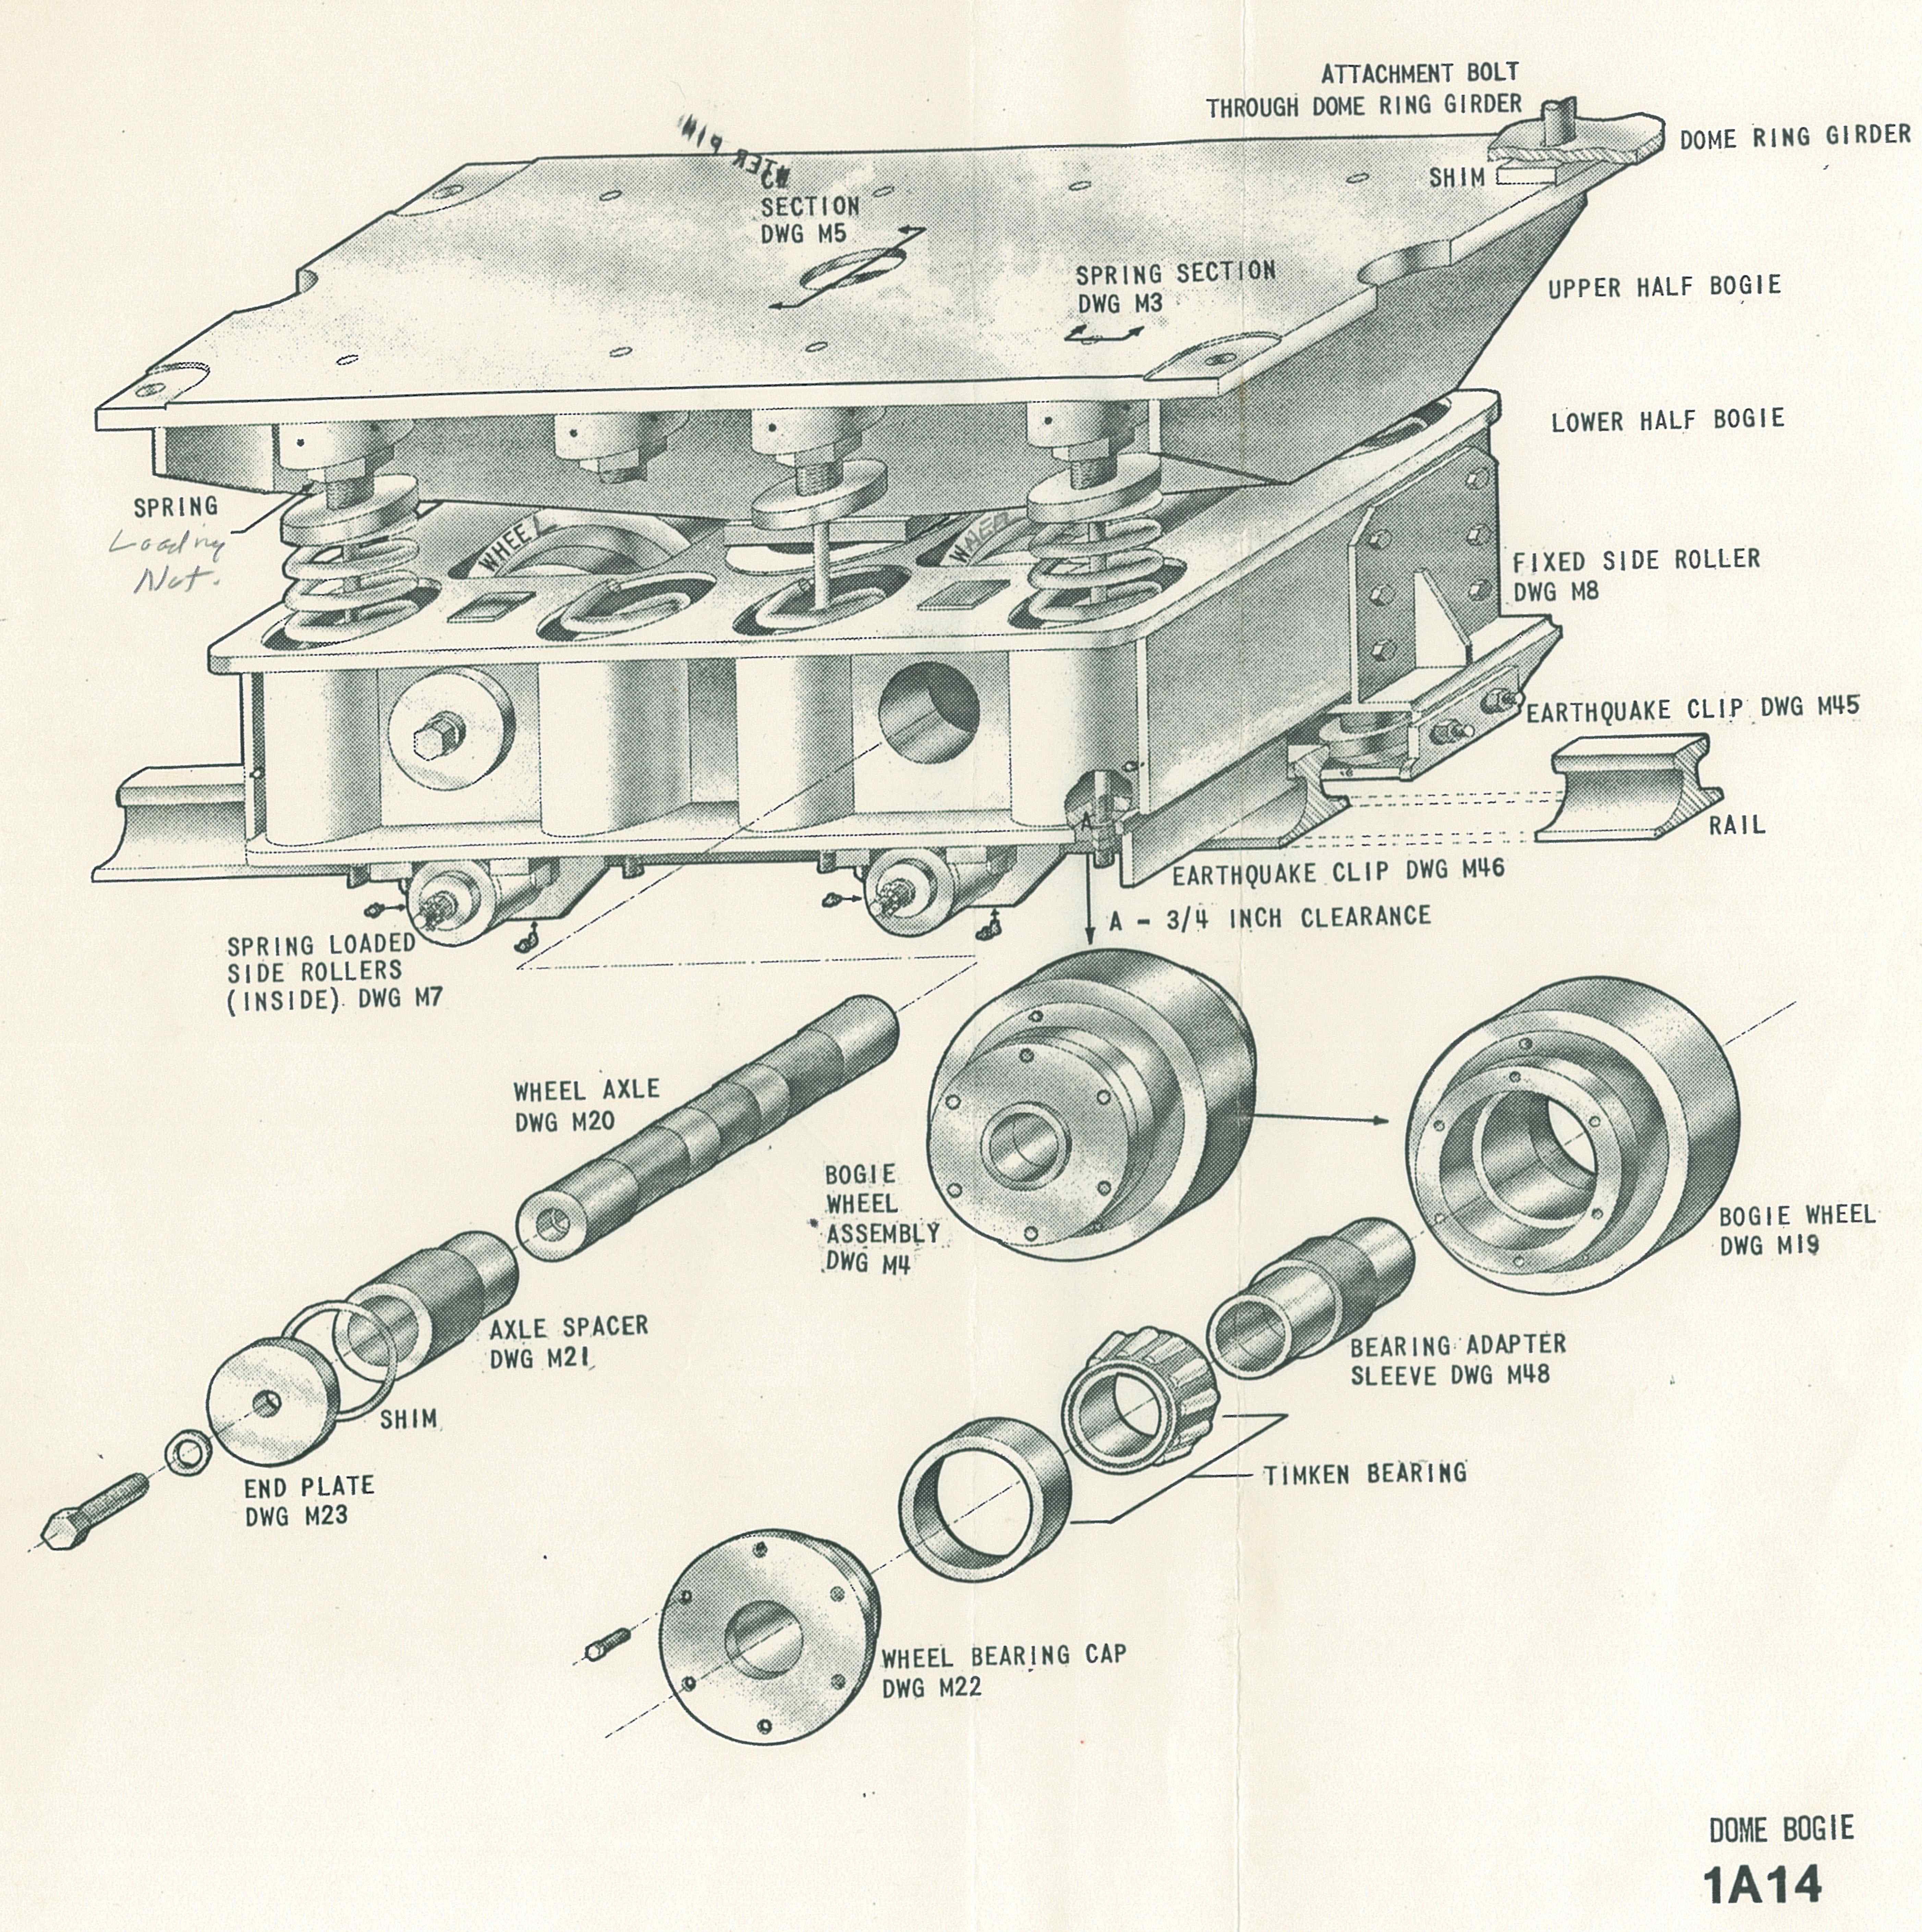 Index Of Bauman Gmt Information Brucebigelow Case 530 Engine Diagram Dome Bogie Exploded View 1a14 From Observatory Handbook